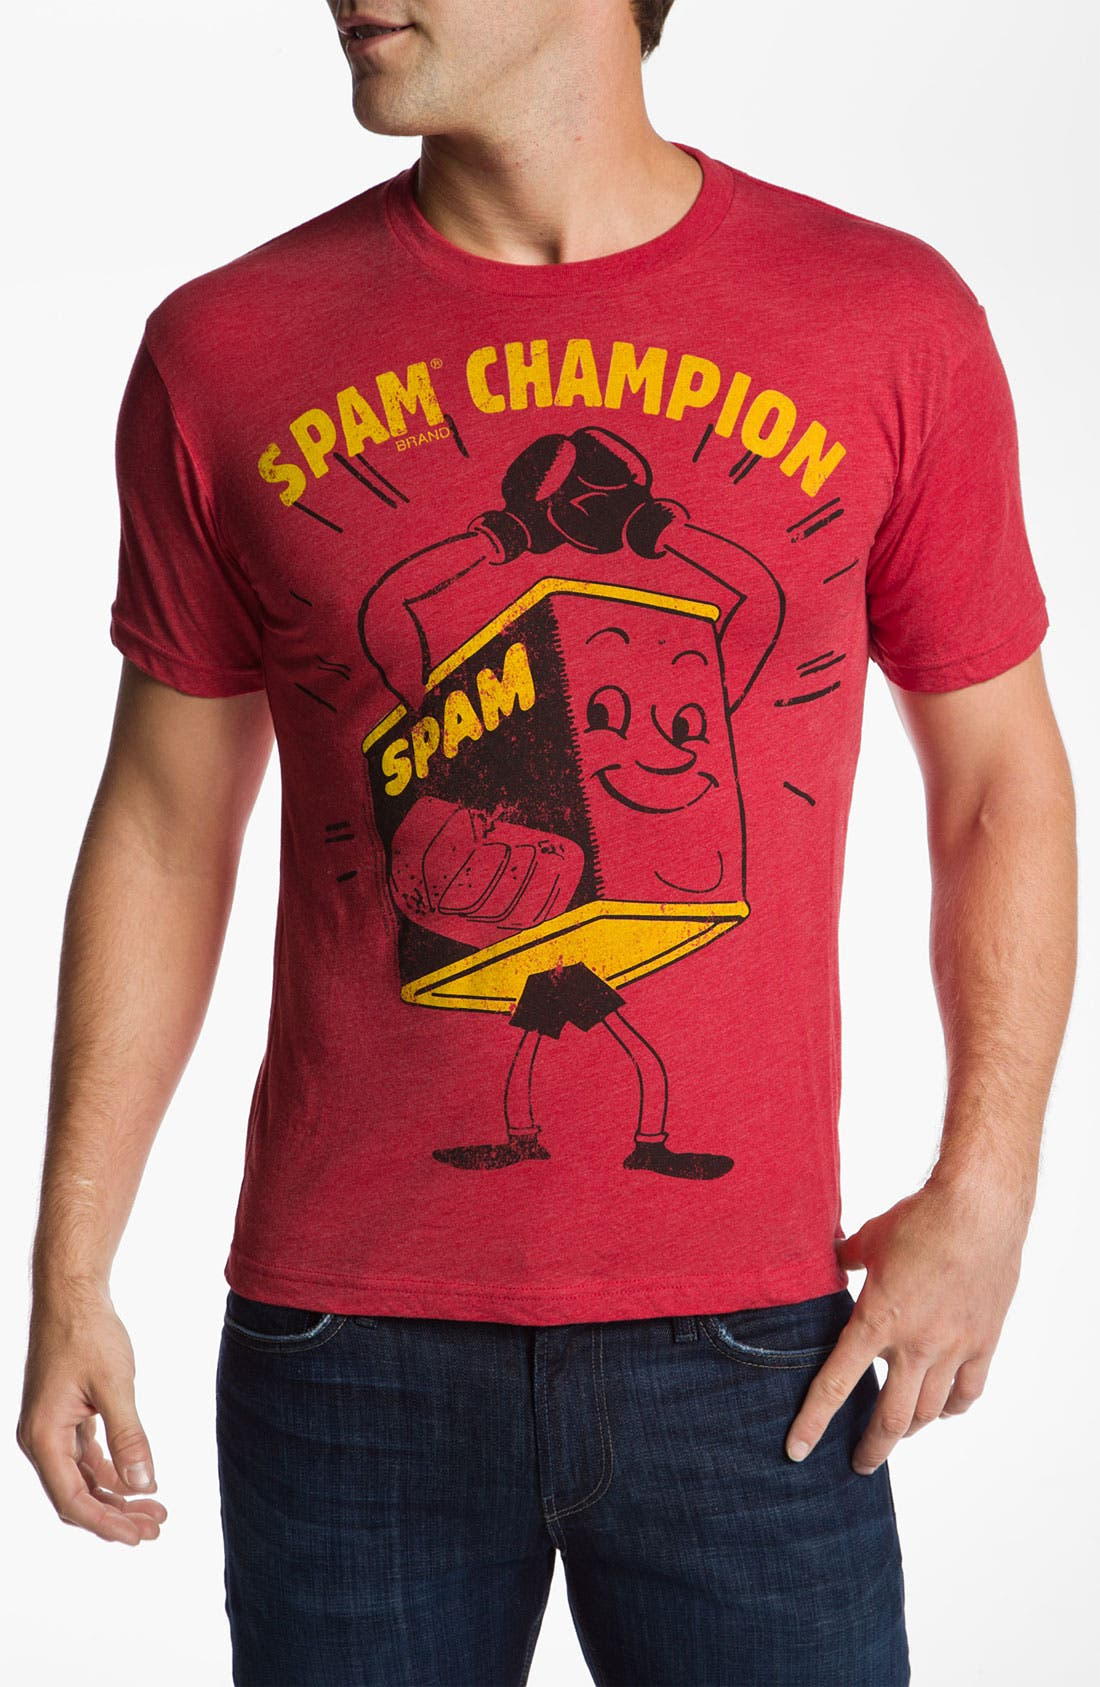 Alternate Image 1 Selected - Free Authority 'SPAM Champion' Graphic T-Shirt